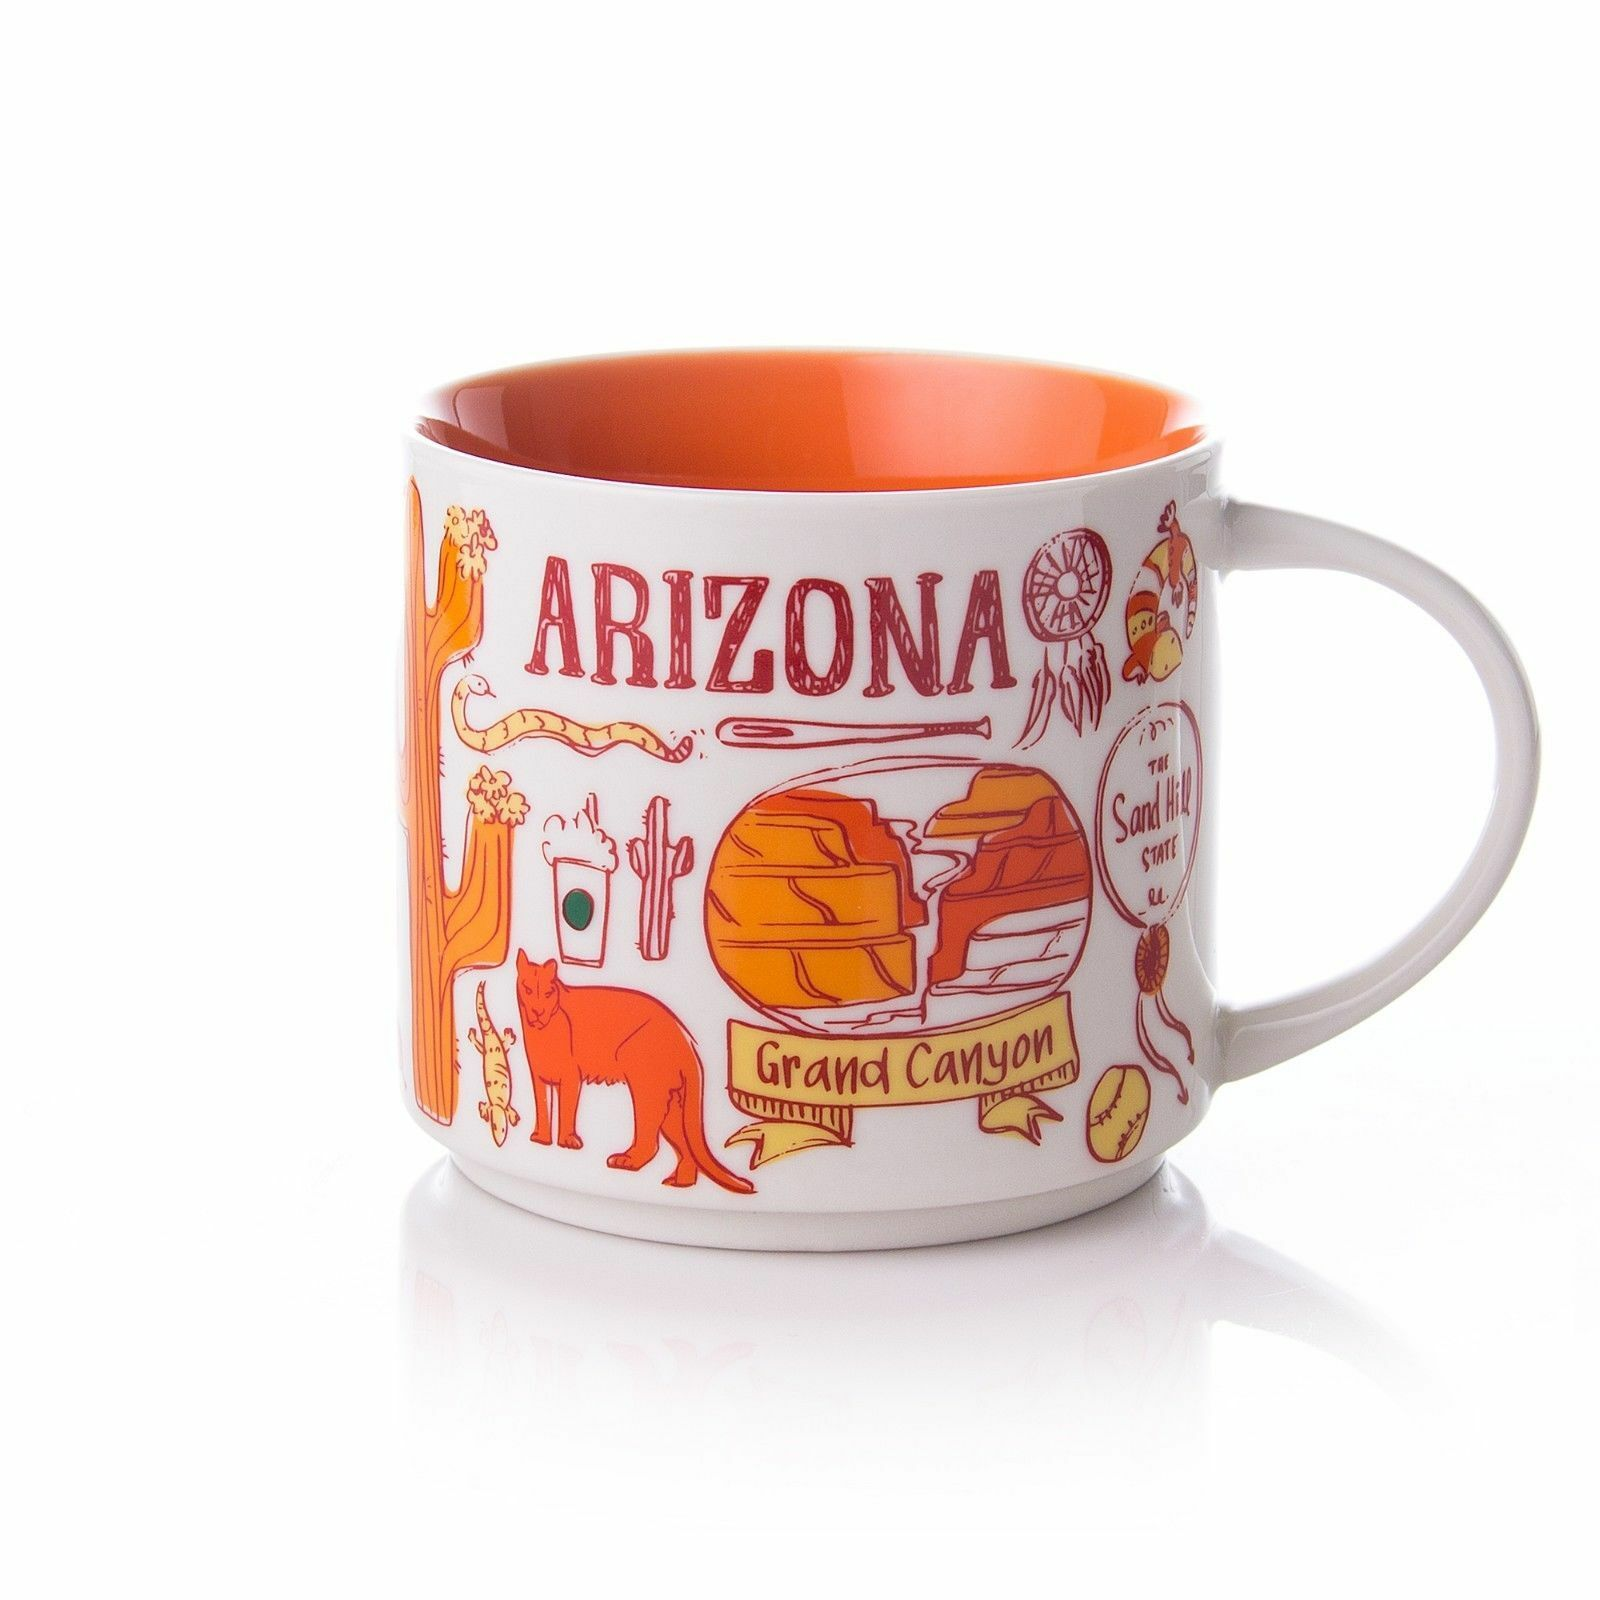 New Starbucks Arizona Been There Series Coffee Mug Tea Cup 1